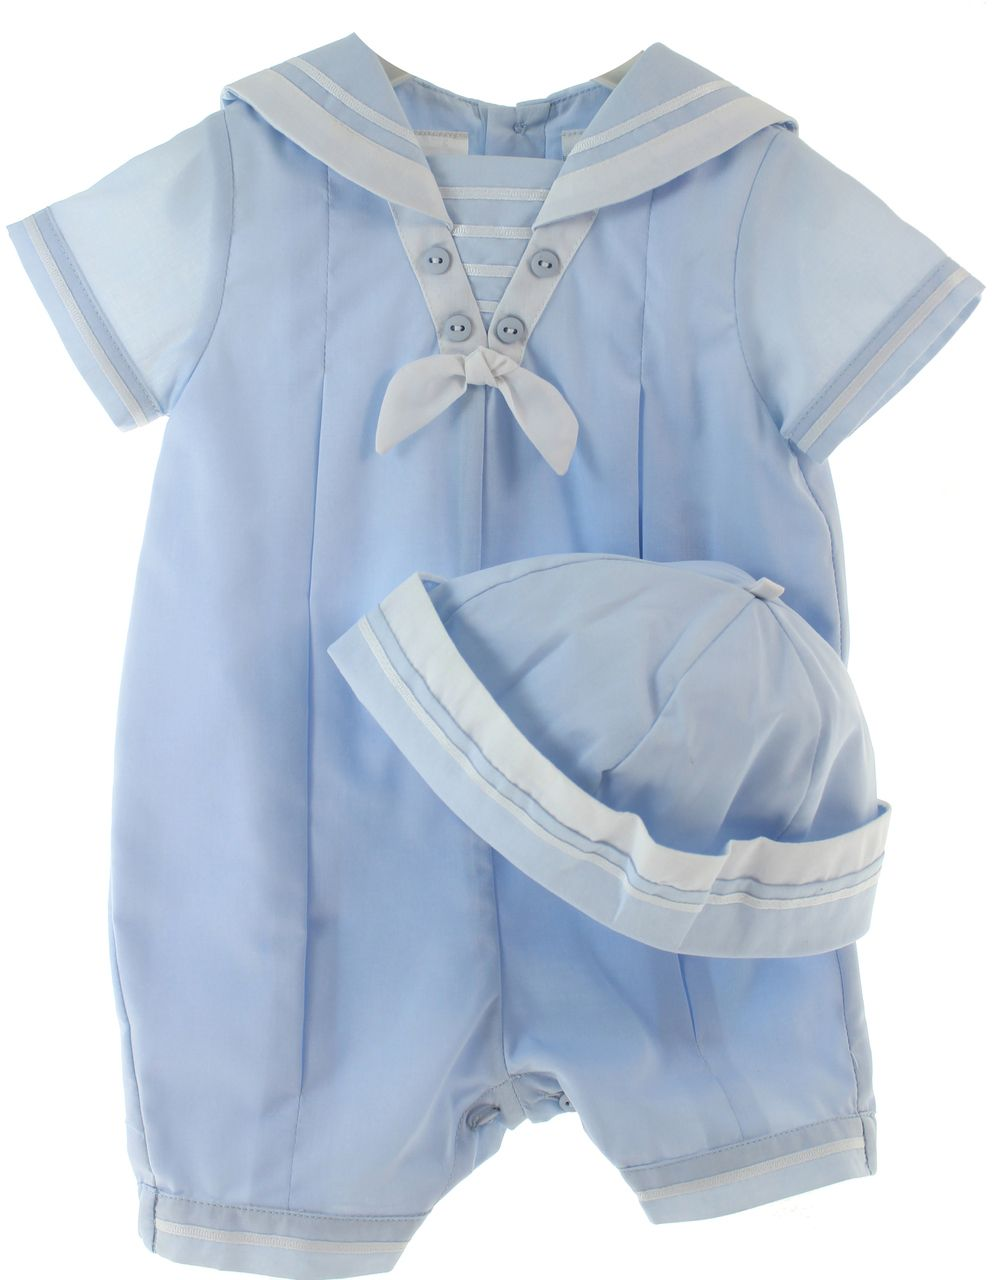 b9f7e12e1 Infant Boys Light Blue Sailor Shortall Outfit with Hat Set